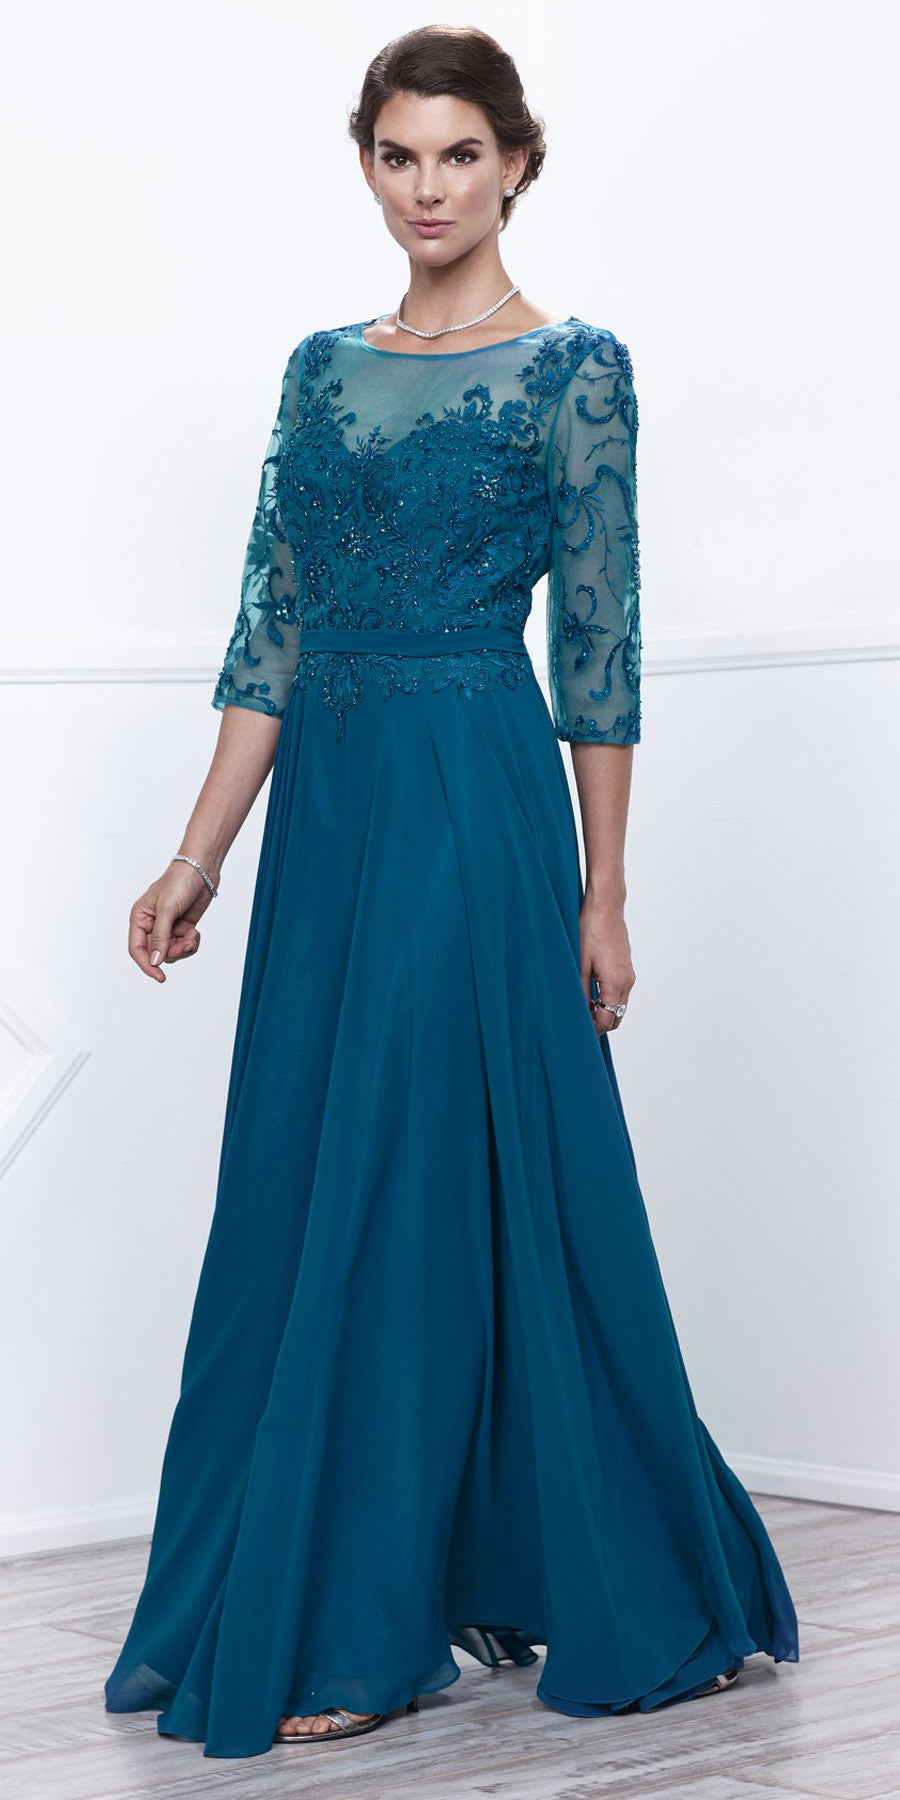 Teal Sheer Quarter Sleeves Illusion Embroidered Formal Dress